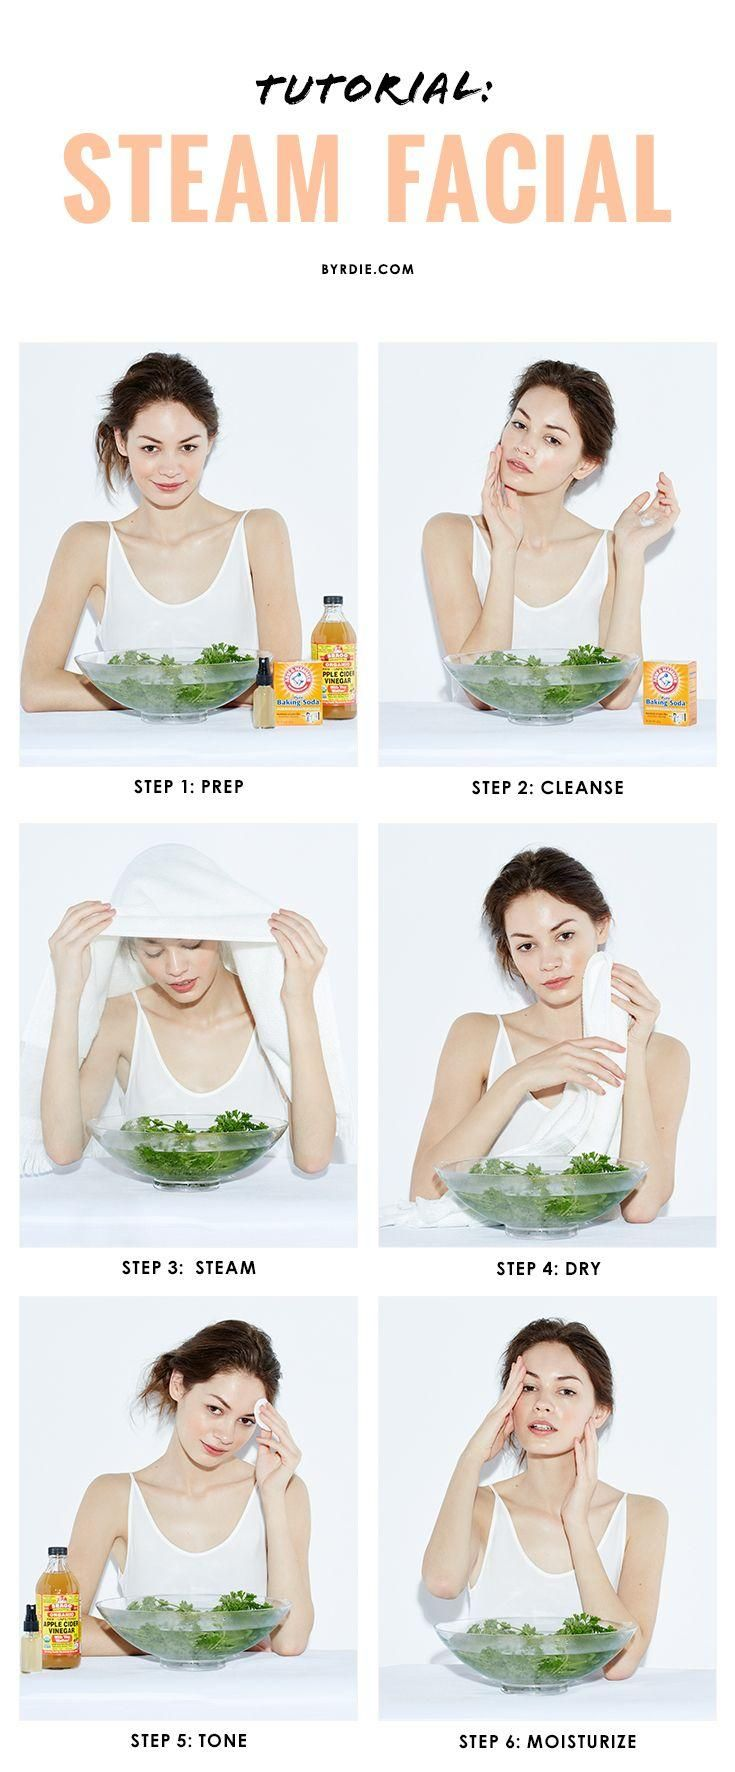 Tutorial: How to Give Yourself an All-Natural Steam Facial